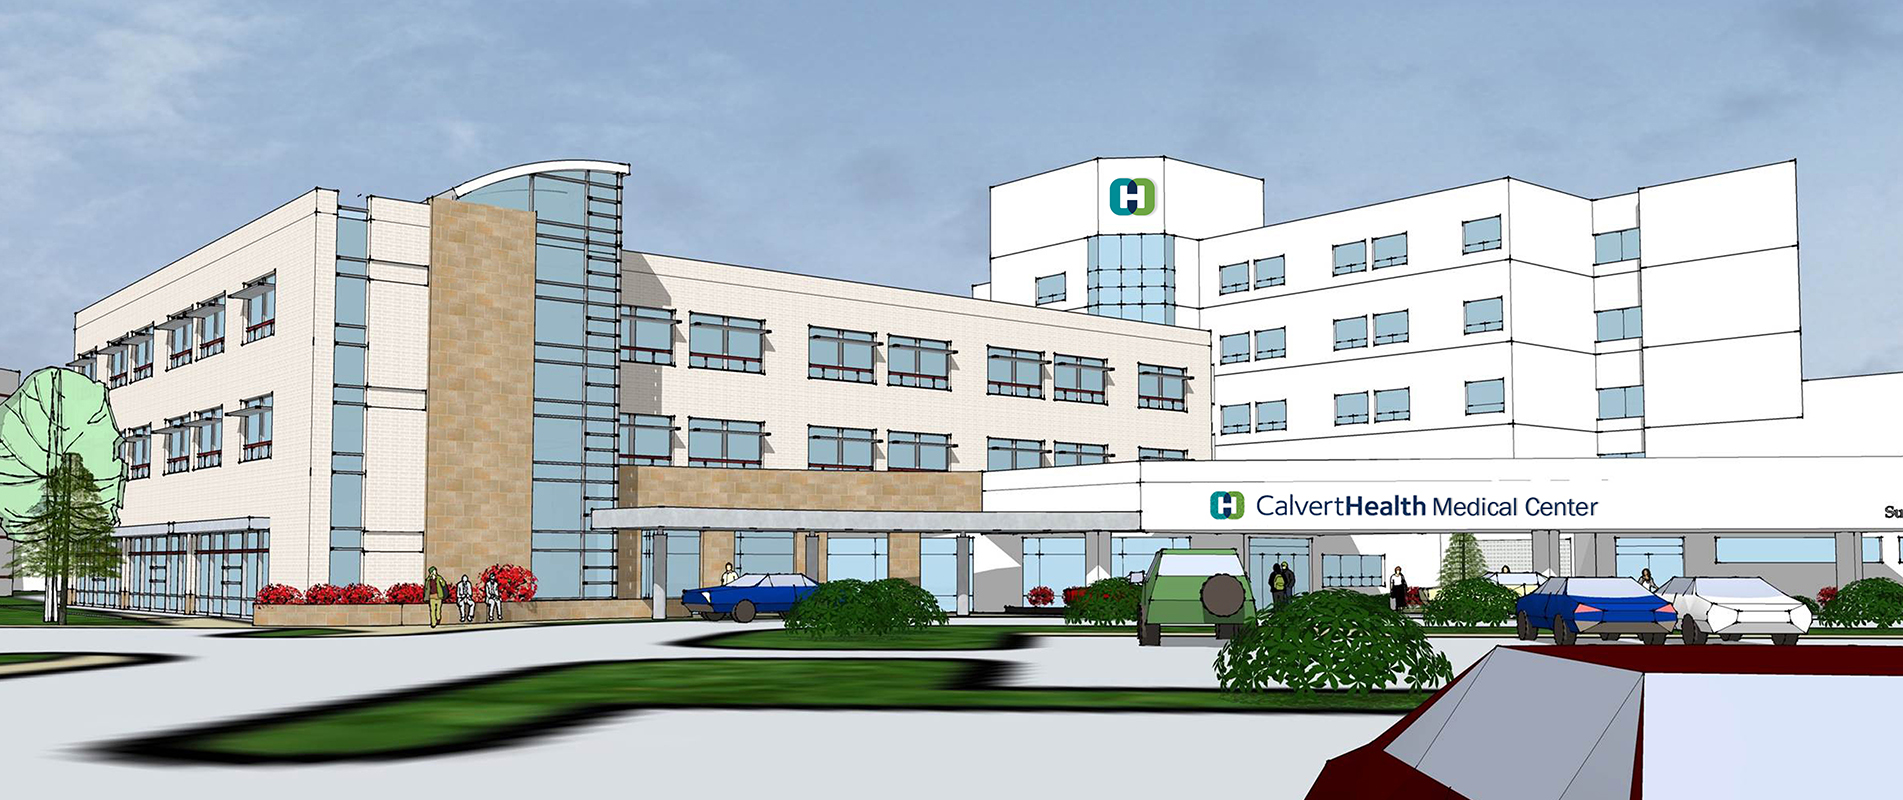 We Are CalvertHealth